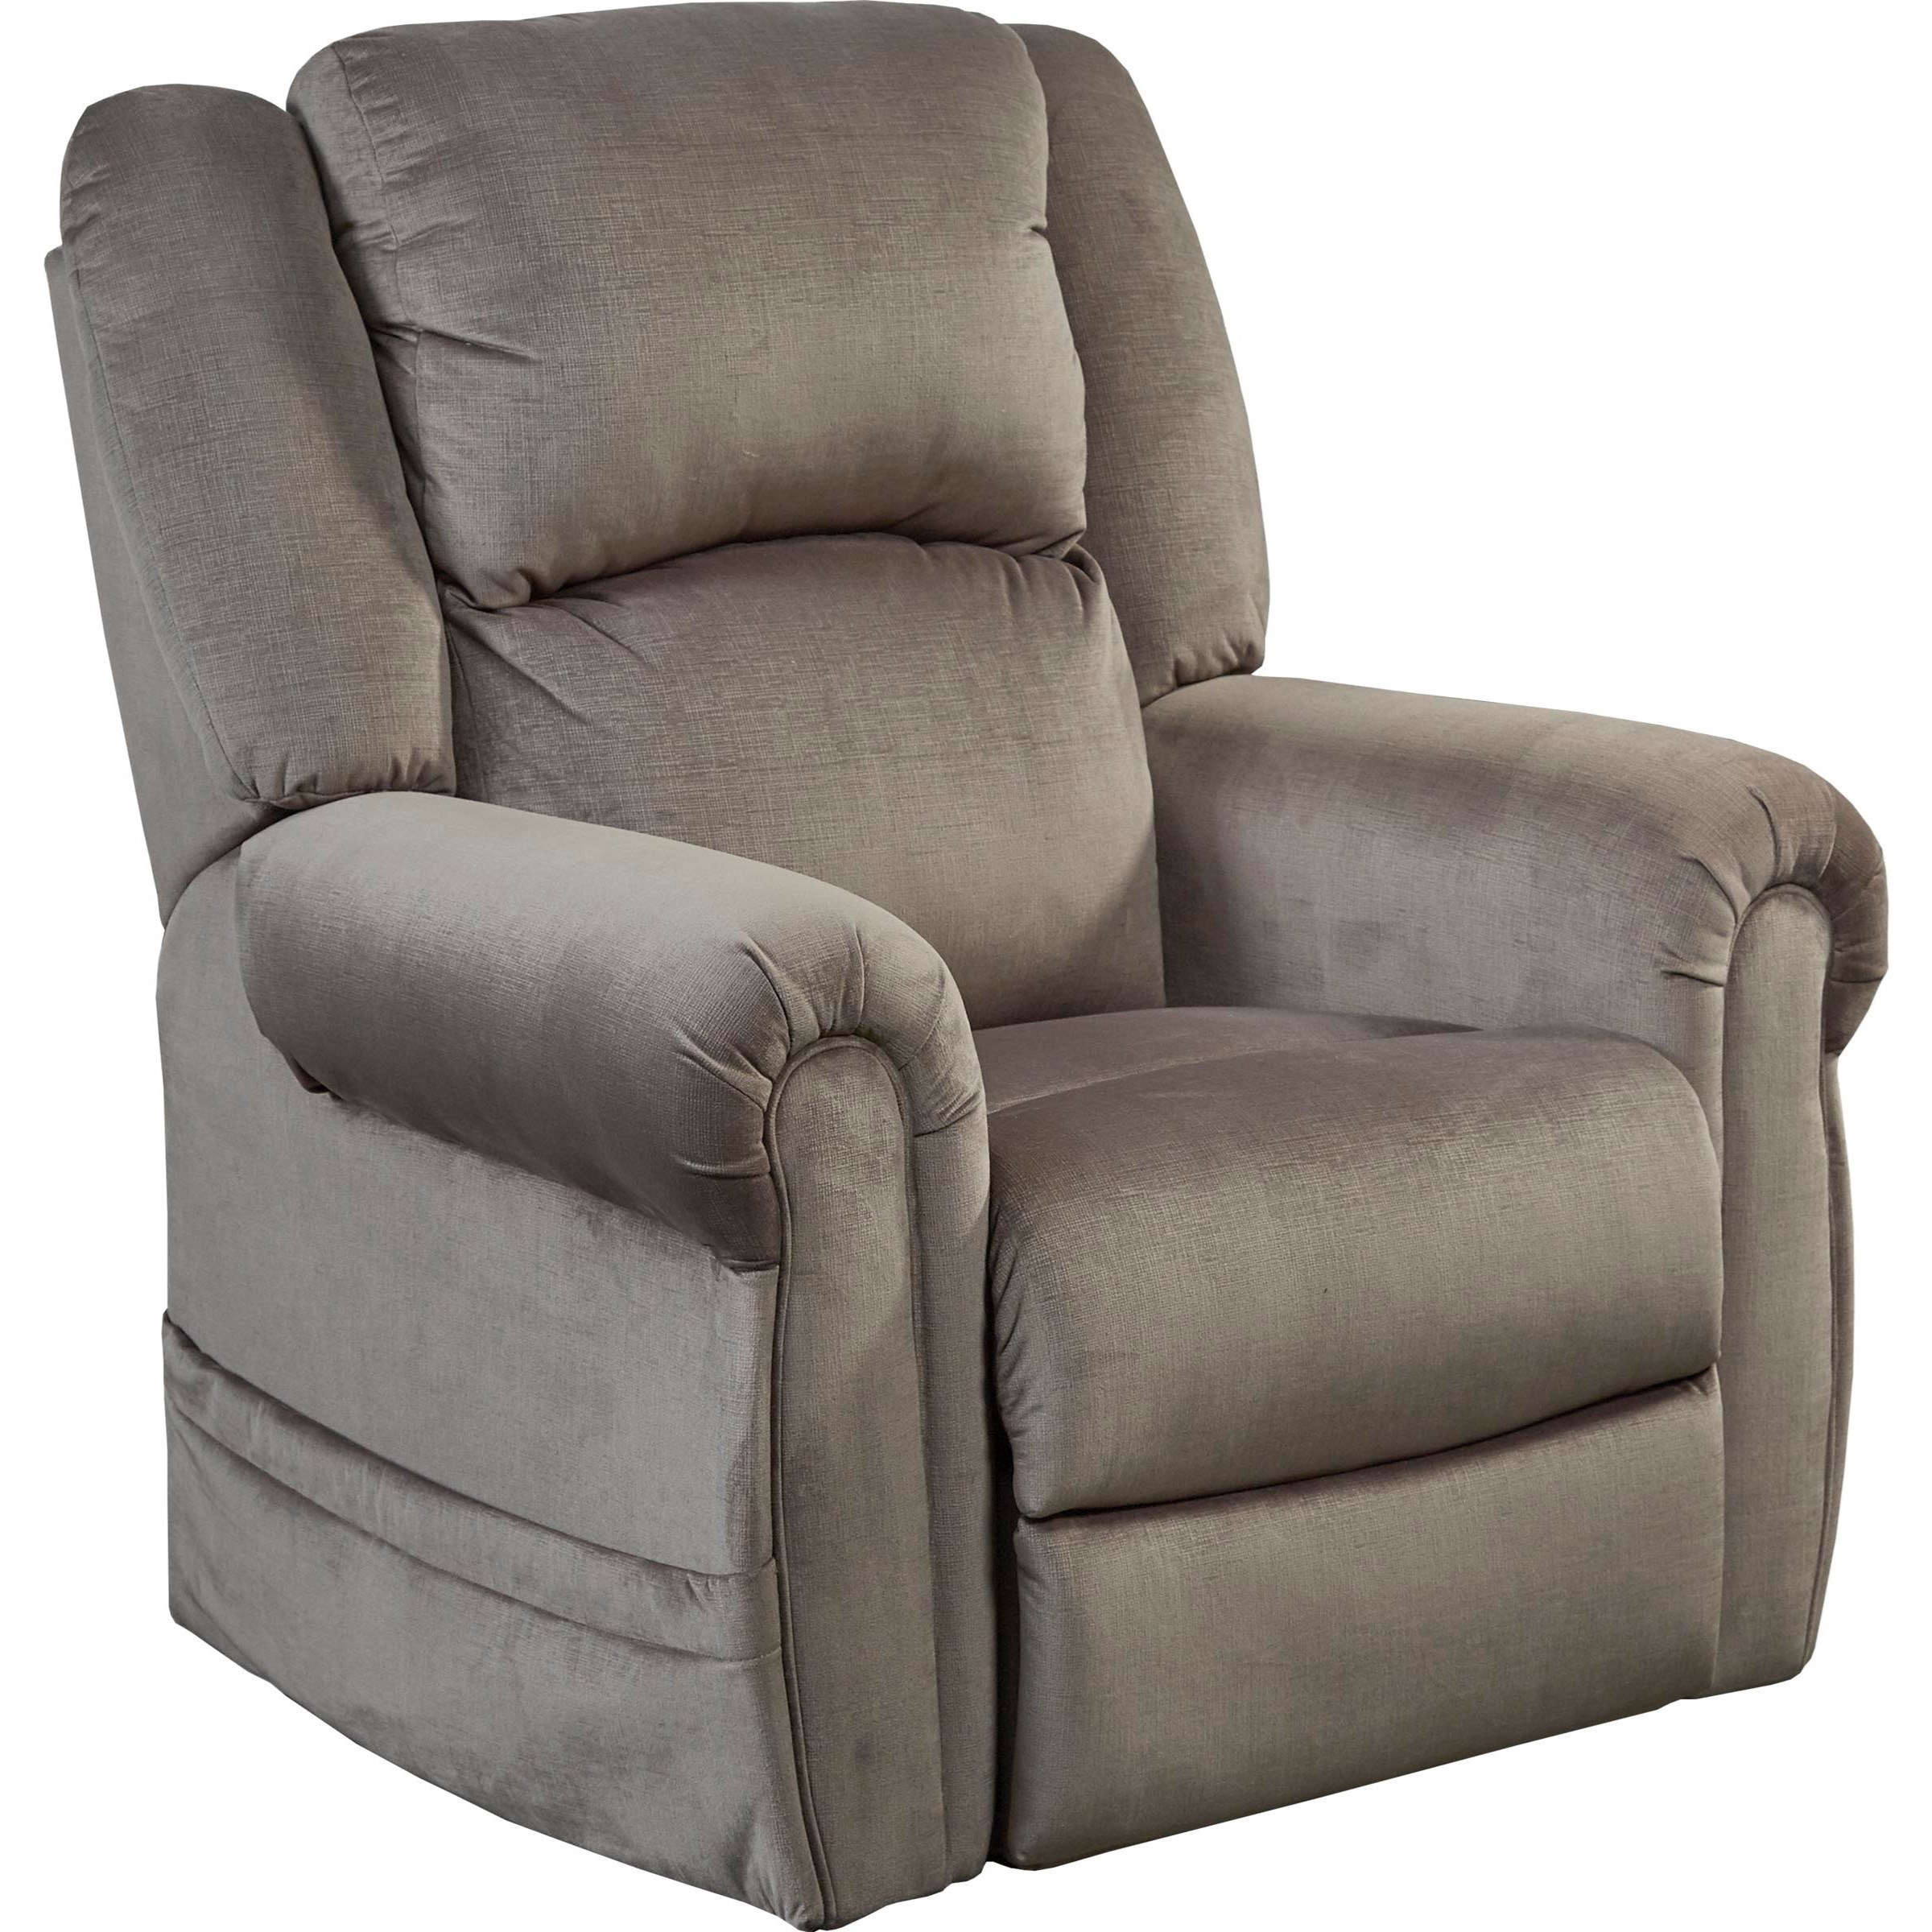 Beau Catnapper Motion Chairs And ReclinersSpencer Lift Recliner With Power  Headrest ...